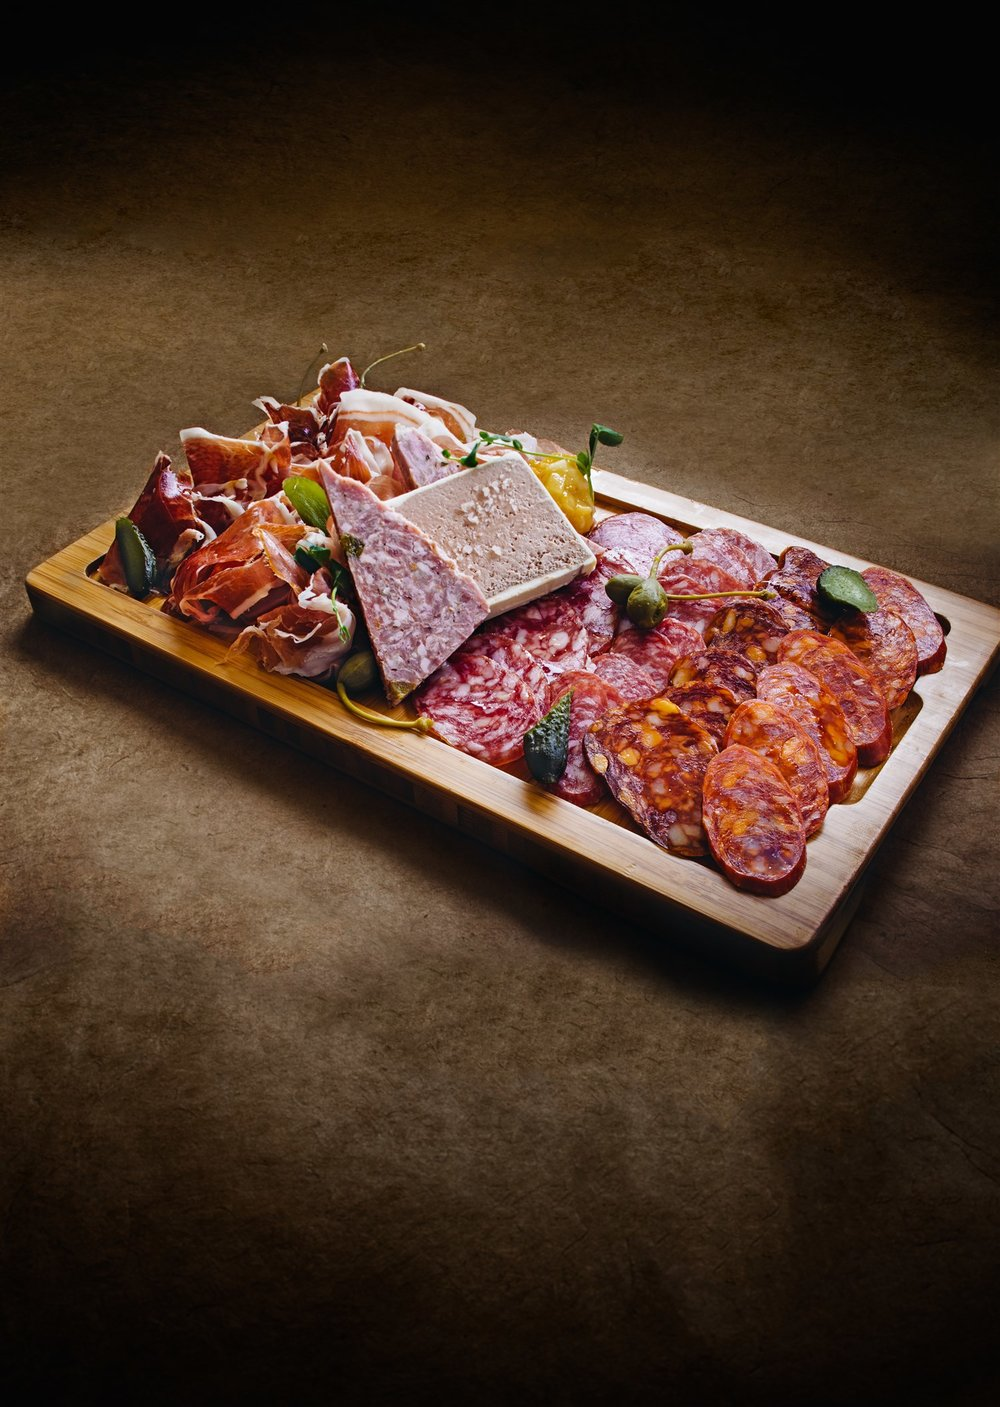 Charcuterie at  Bar Oso .  Kevin Clark | Courtesy Toptable Group